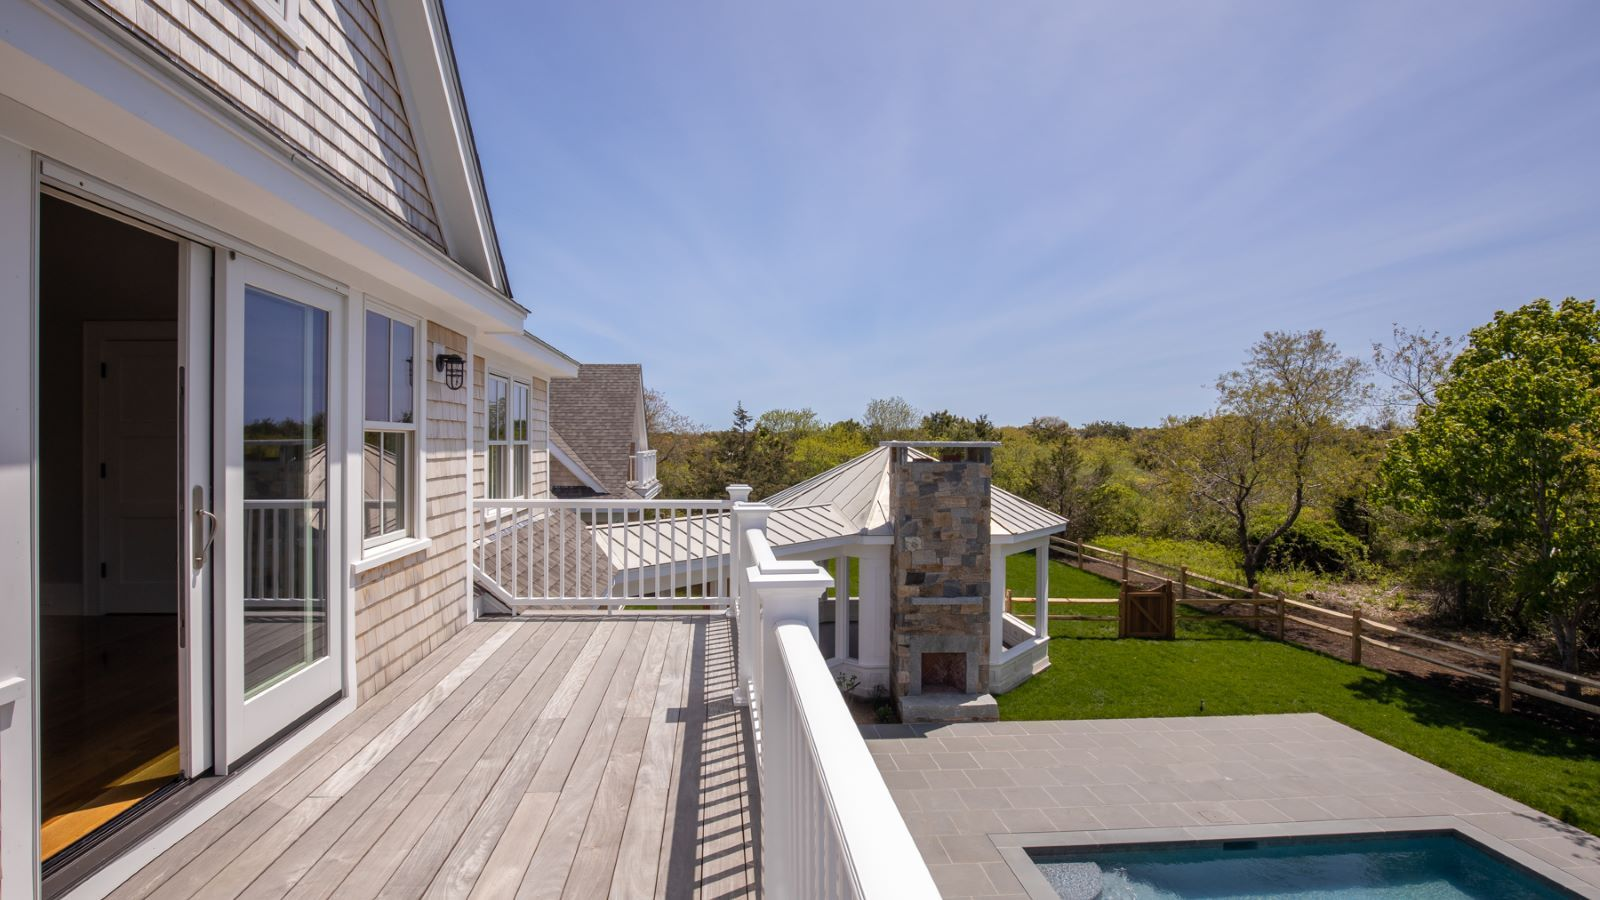 20 West Street Edgartown Photo 26